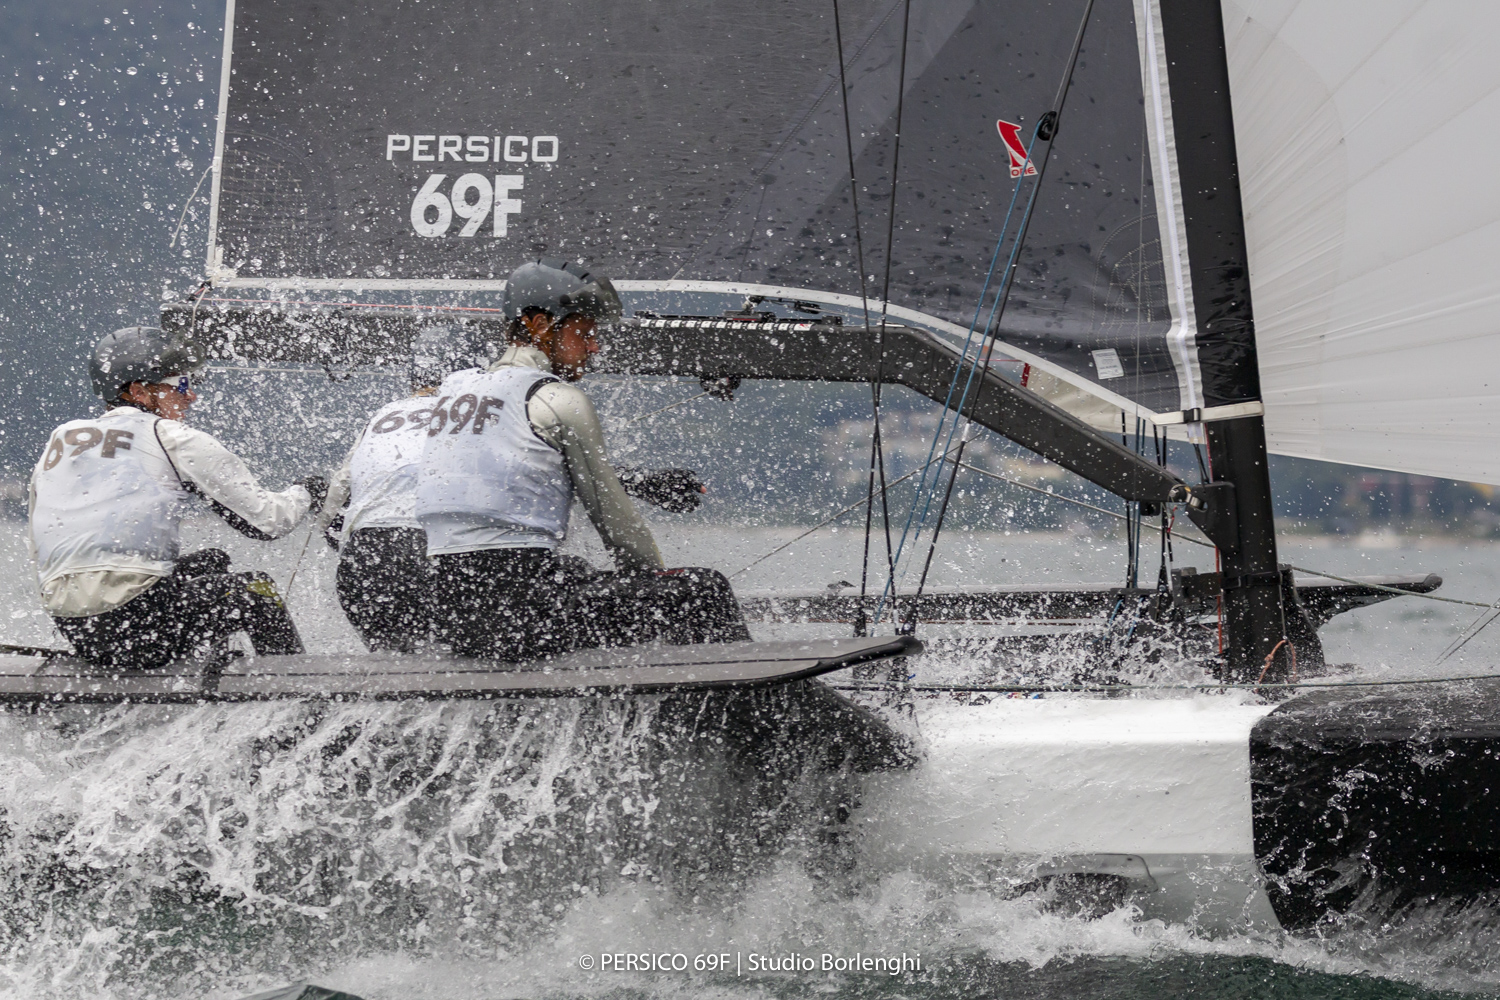 Young Azzurra takes second place at Grand Prix 3 Persico 69F Cup - MEMBER NEWS - Yacht Club Costa Smeralda